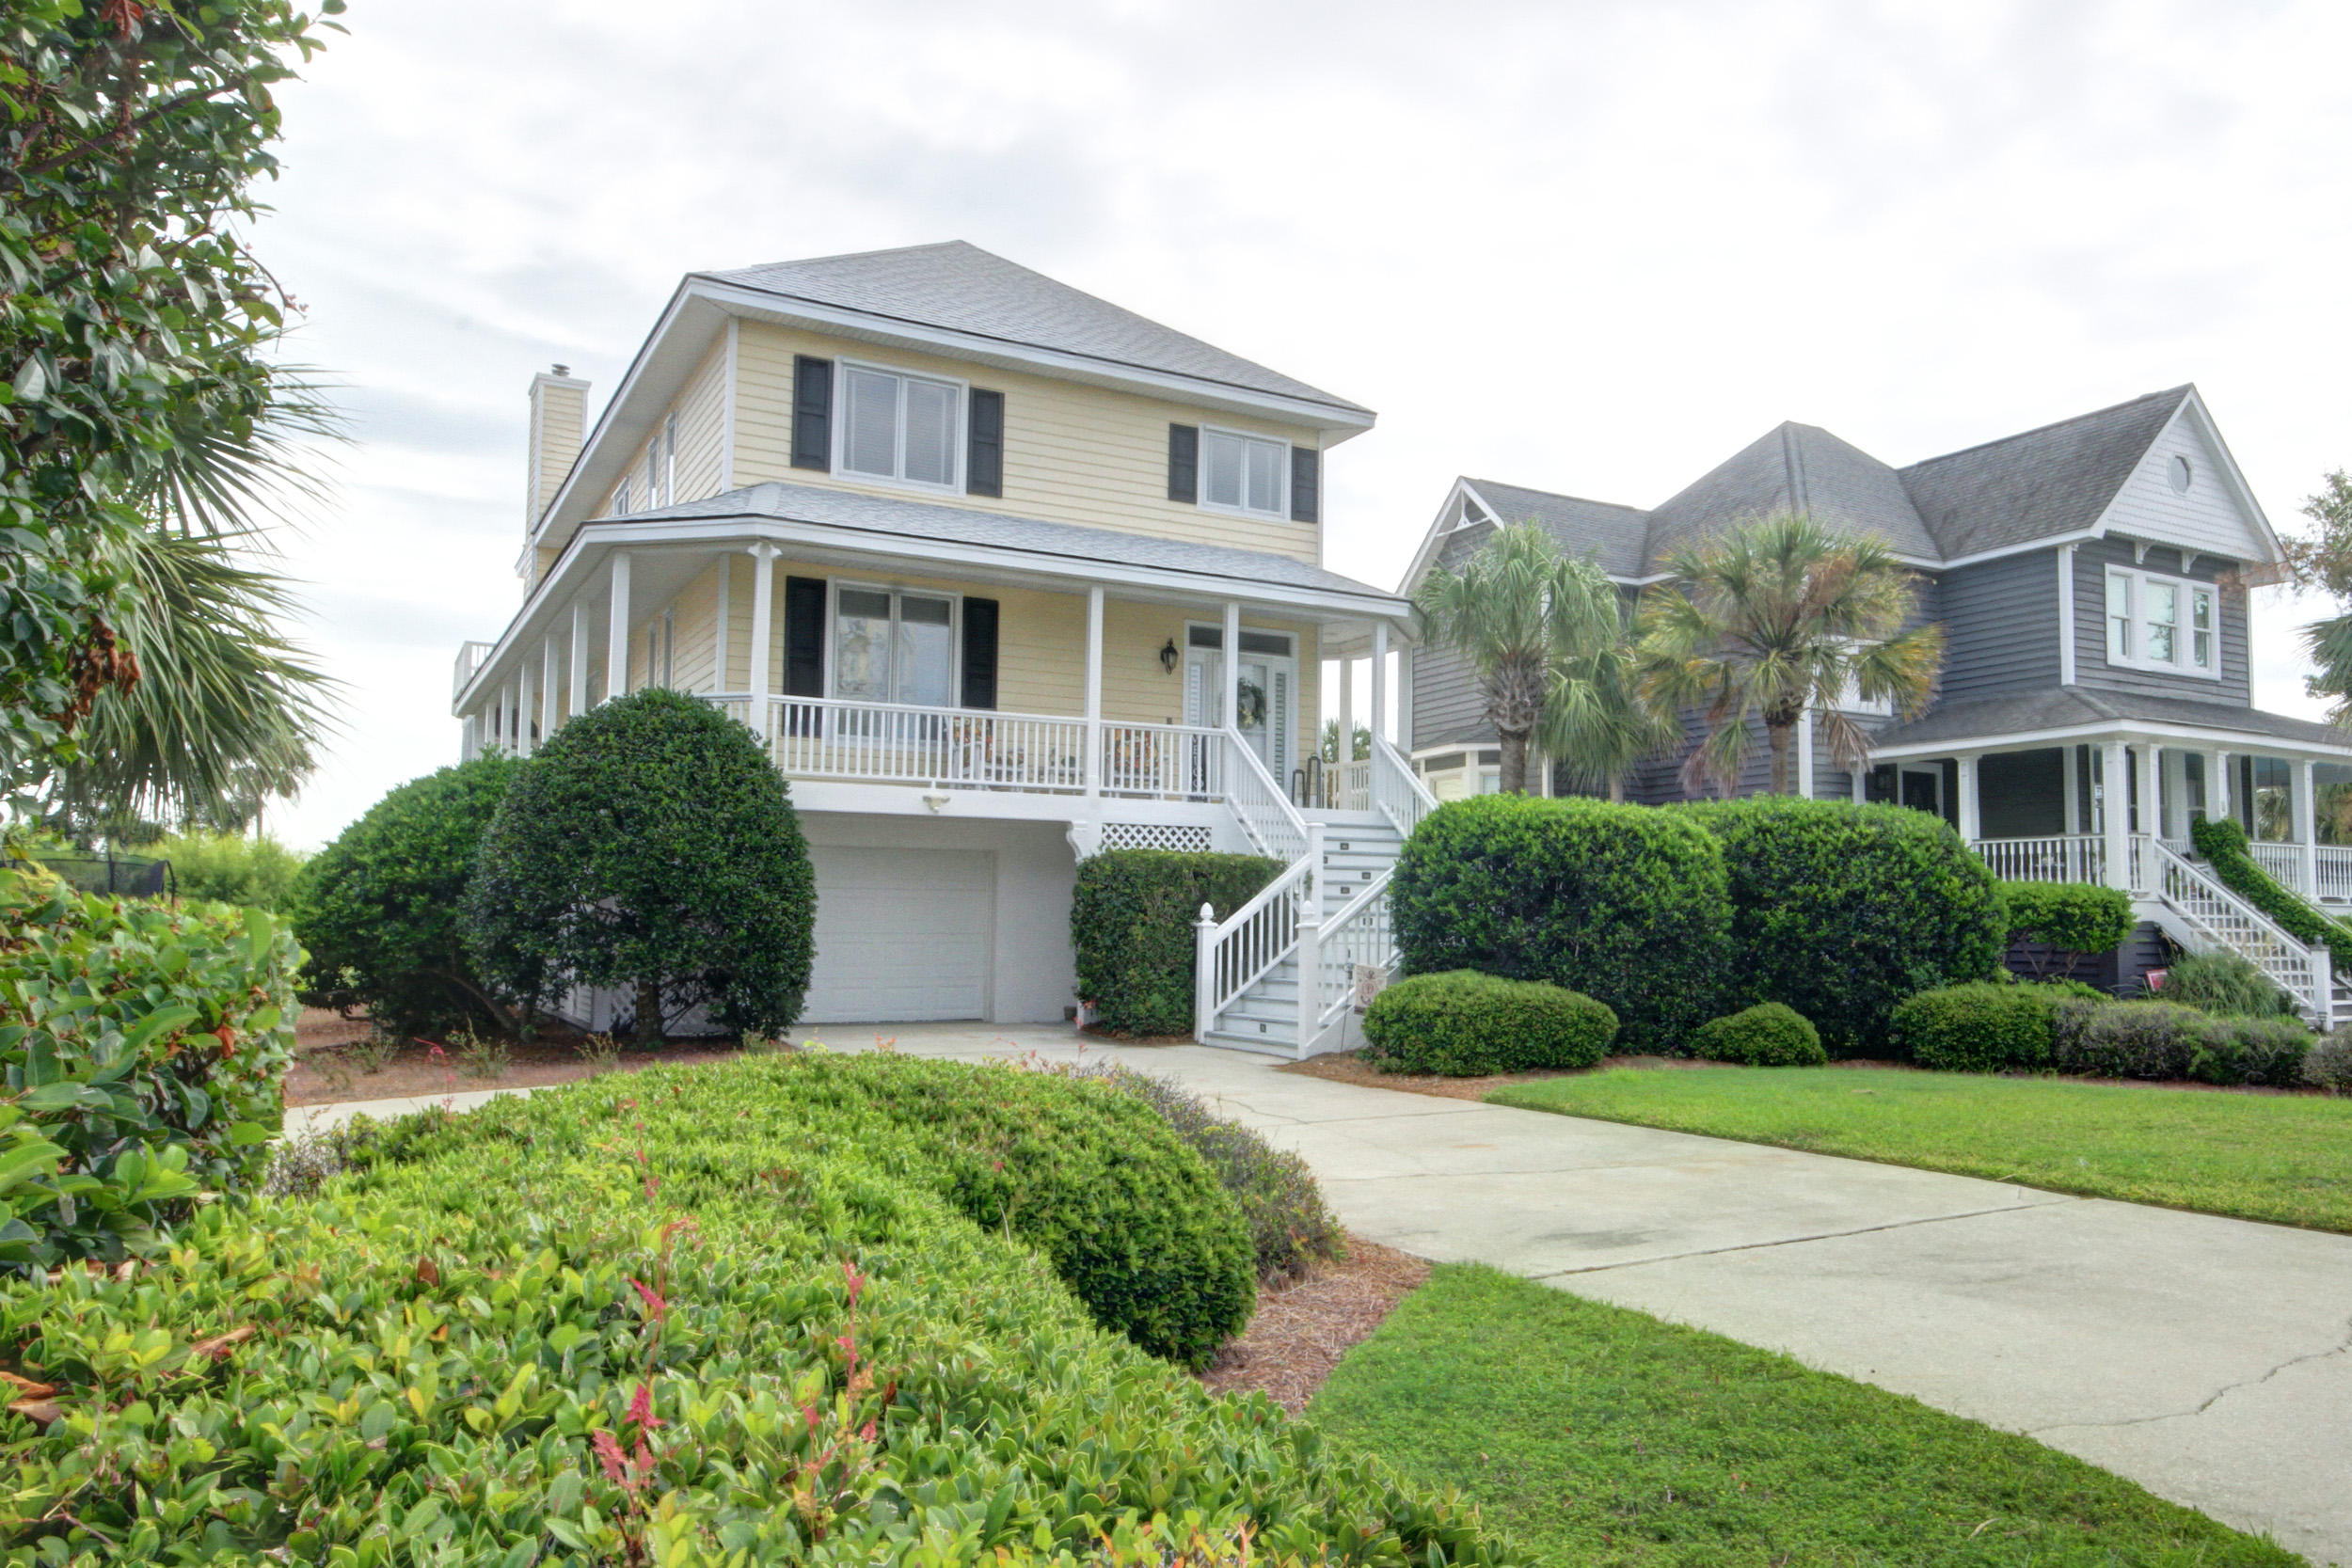 Wild Dunes Homes For Sale - 2 Morgan Pl, Isle of Palms, SC - 6